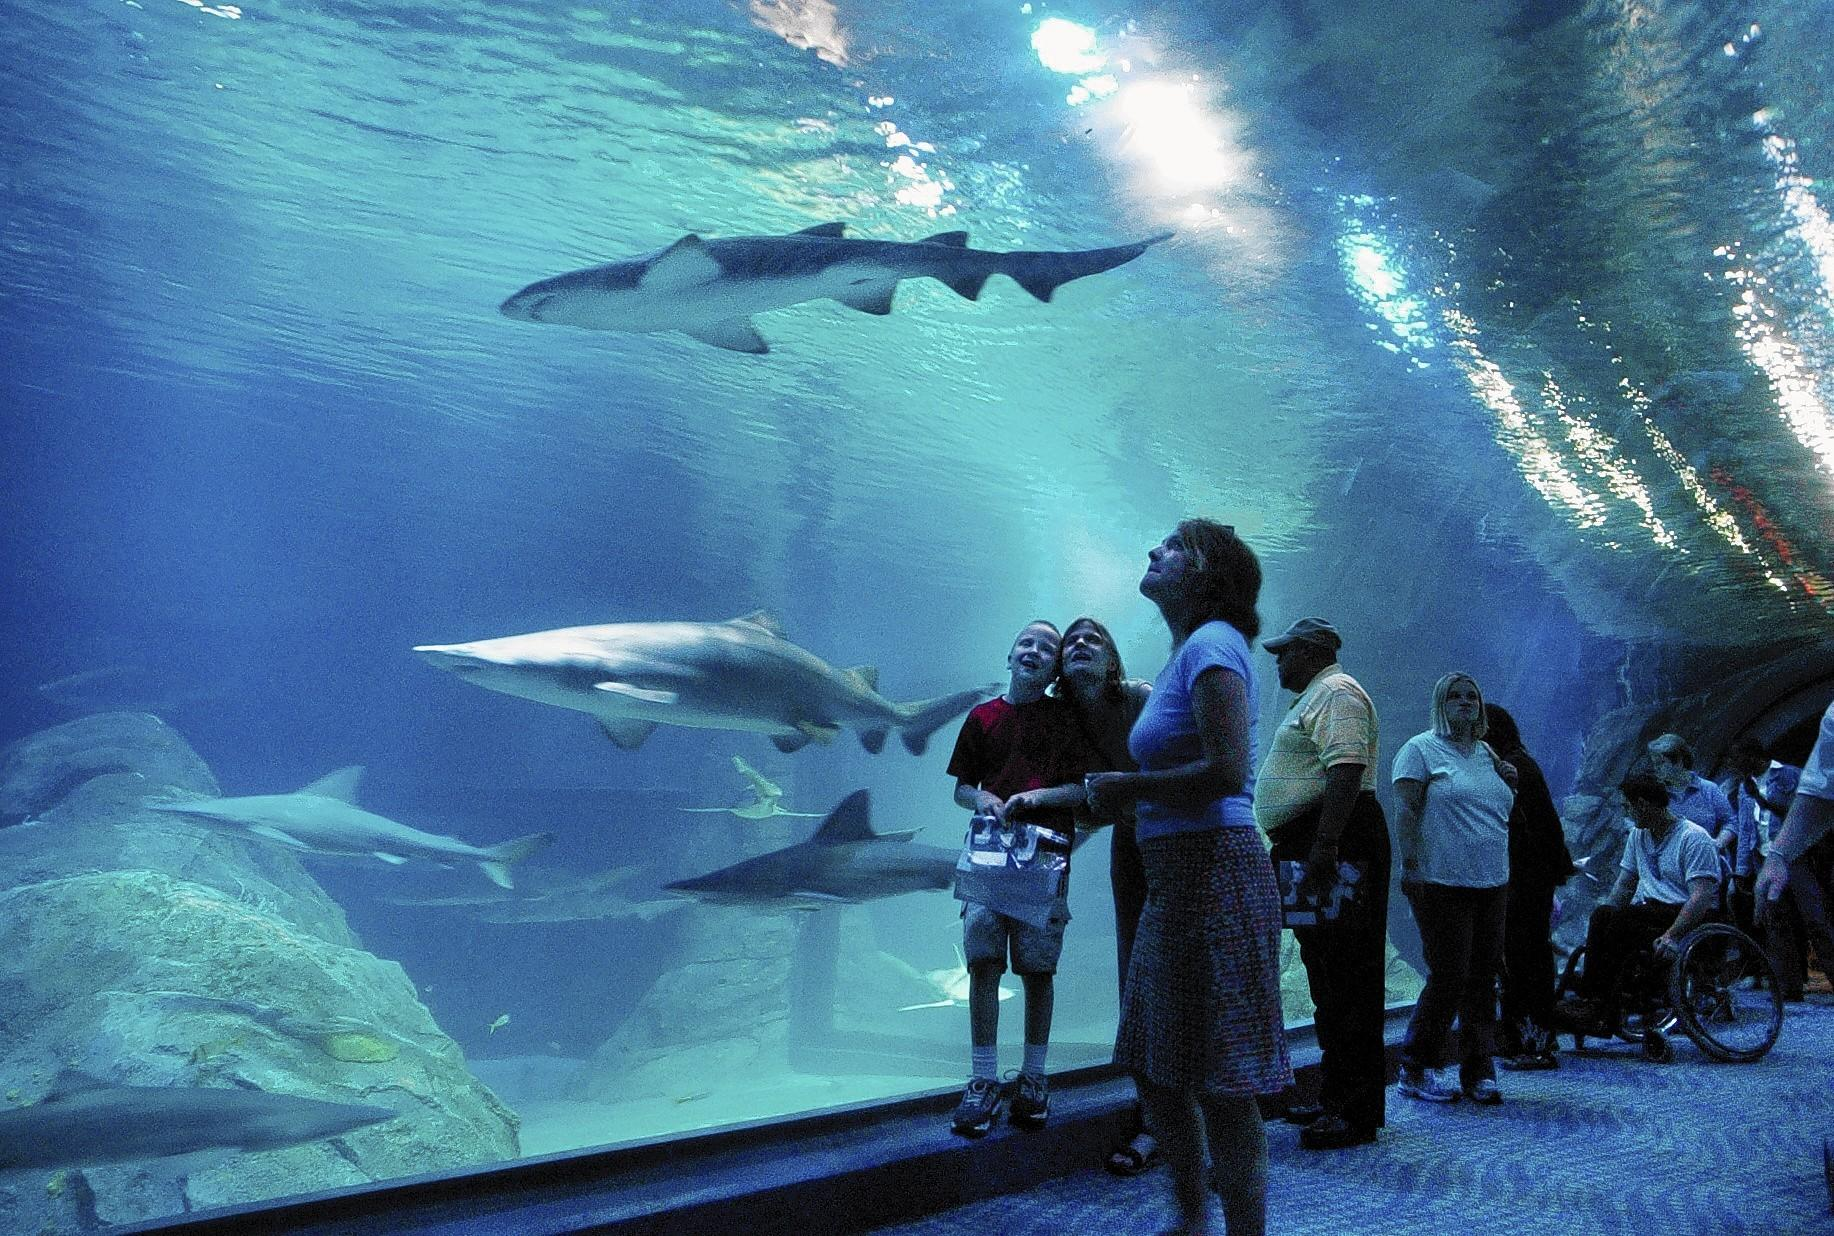 The Adventure Aquarium in Camden is the fifth largest in the country, and has the largest collection of sharks on the East Coast.